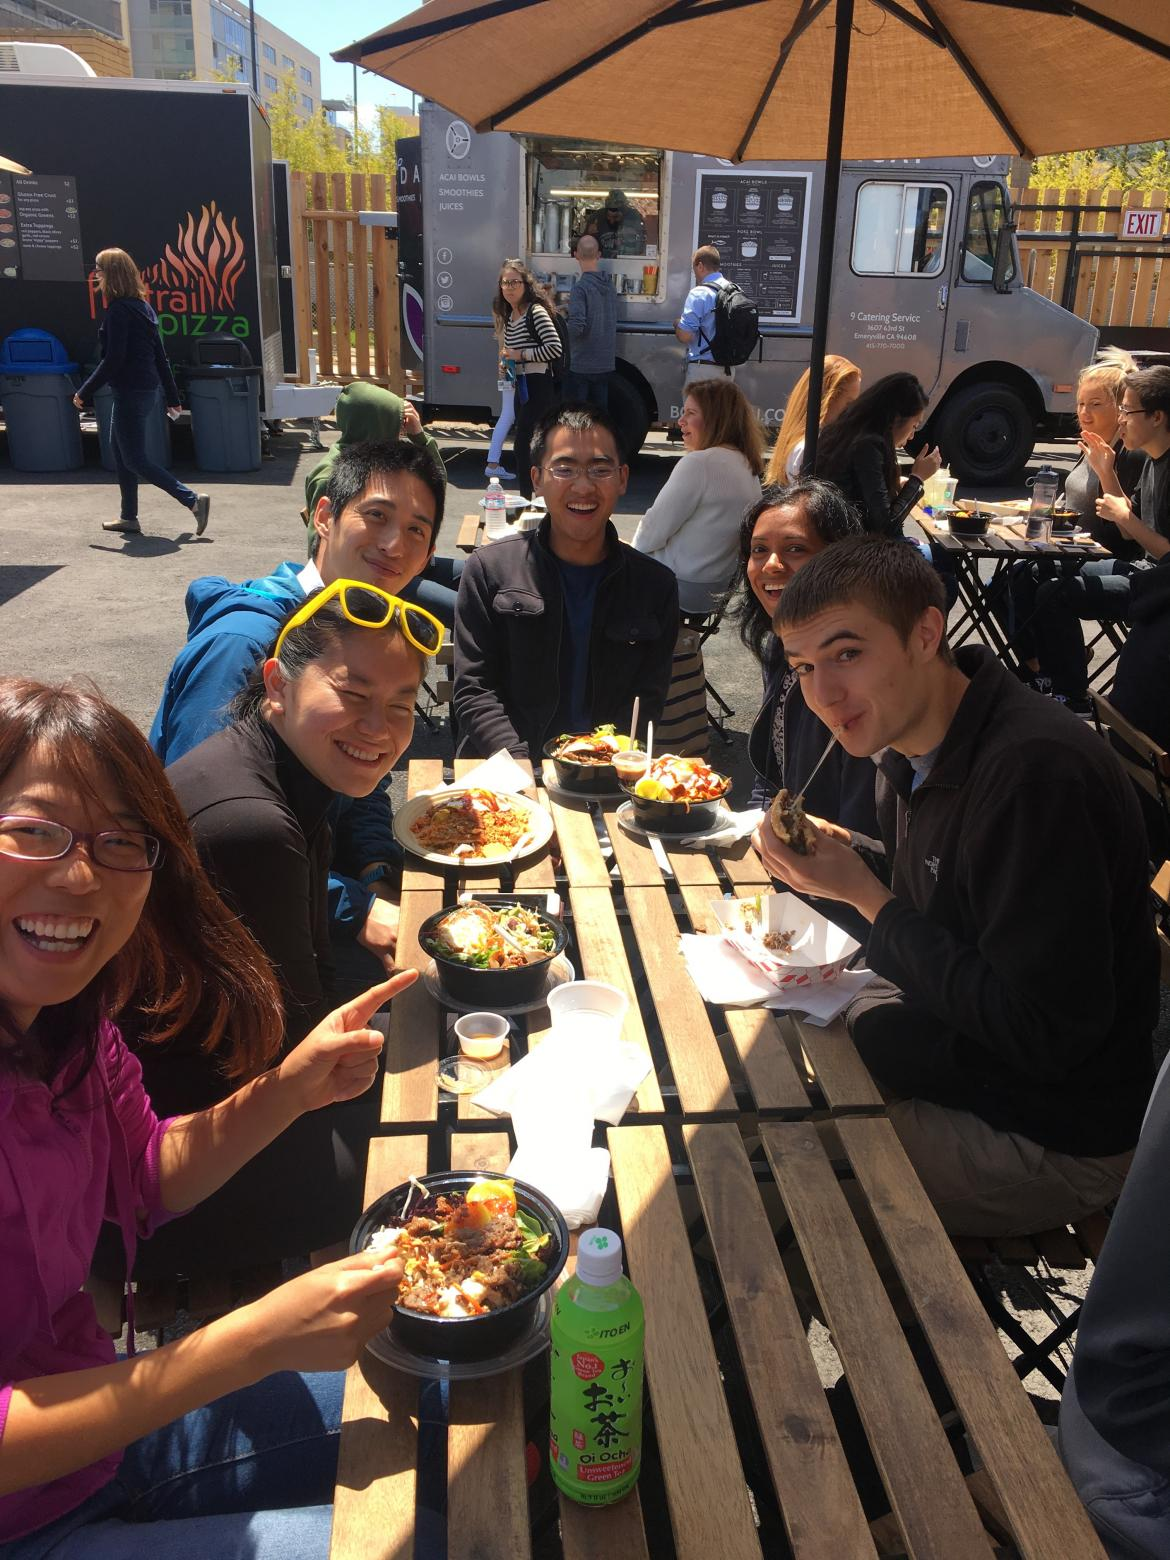 Lab lunch: Goodbye Logan, Welcome back Ruilin!